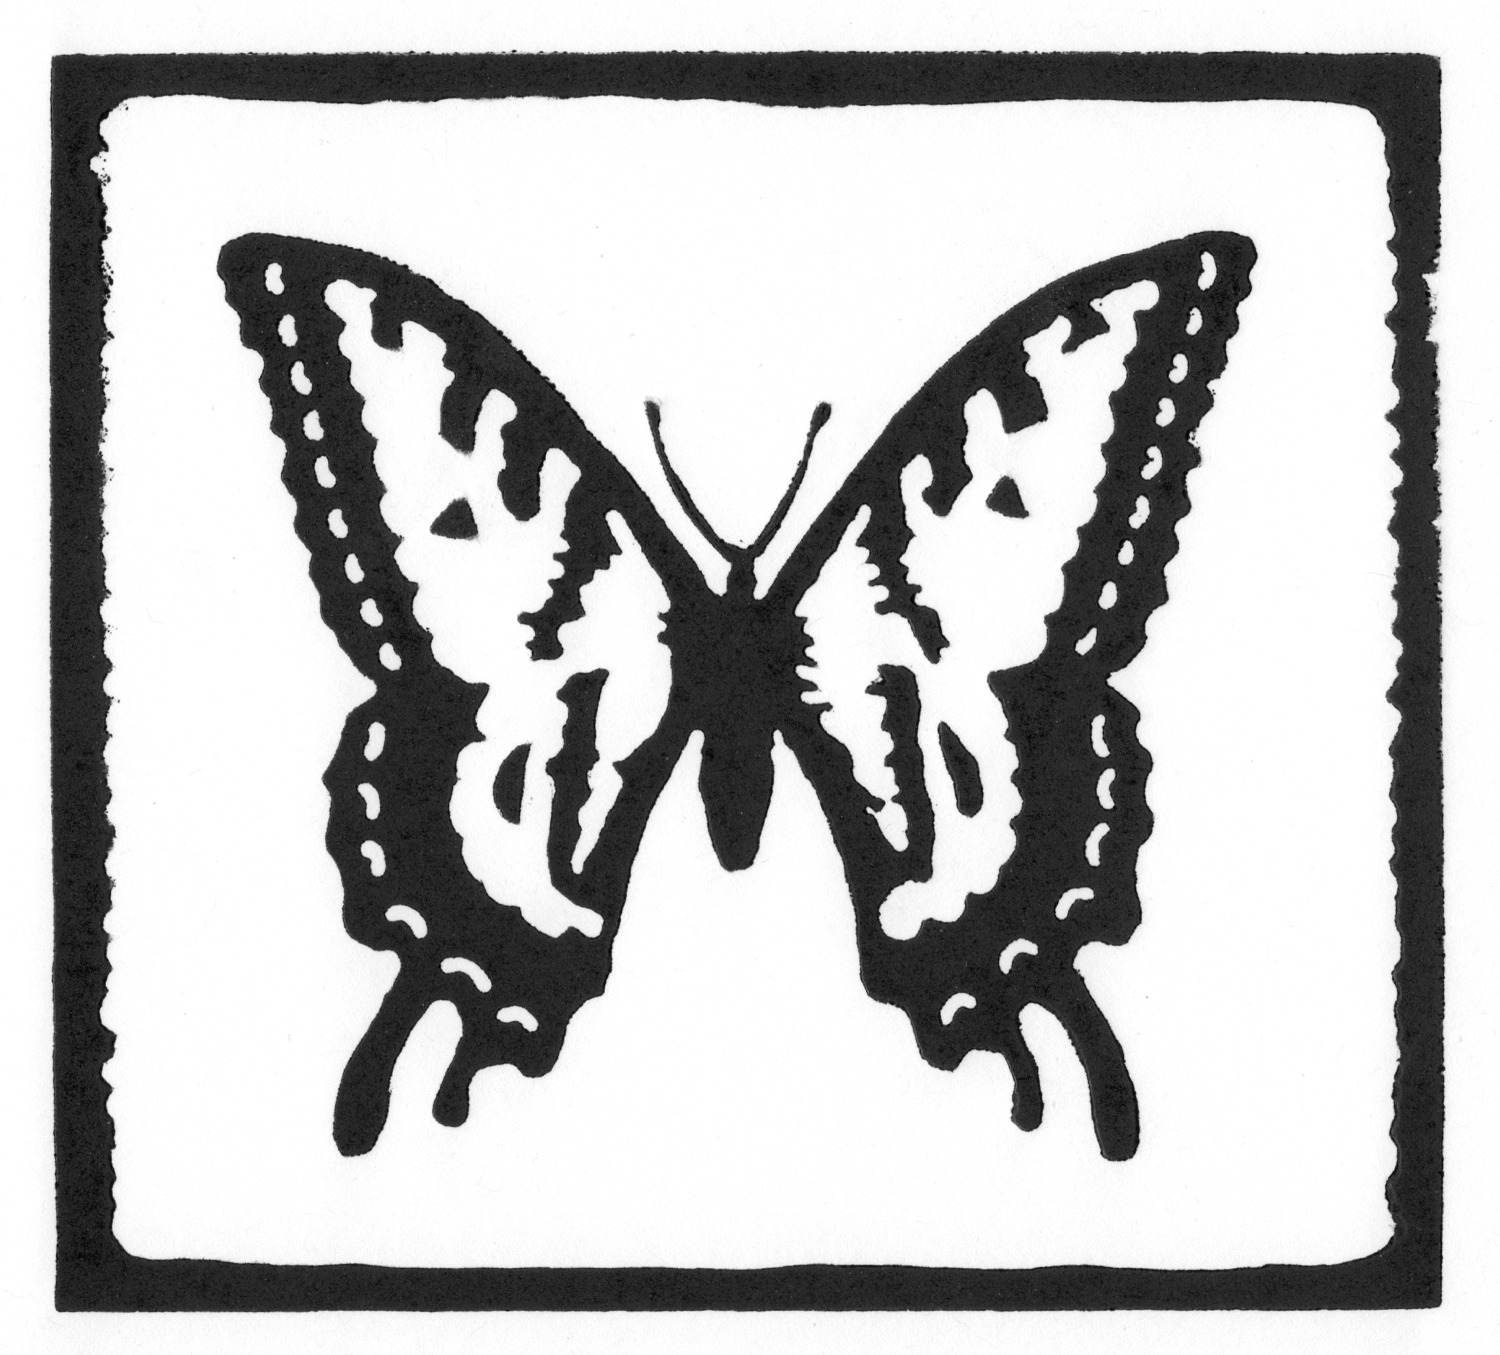 Two-Tailed Swallowtail • © Fred Montague  $48 • image 6 x 5.5 • mat 12 x 12  Edition size: 88 • status: available